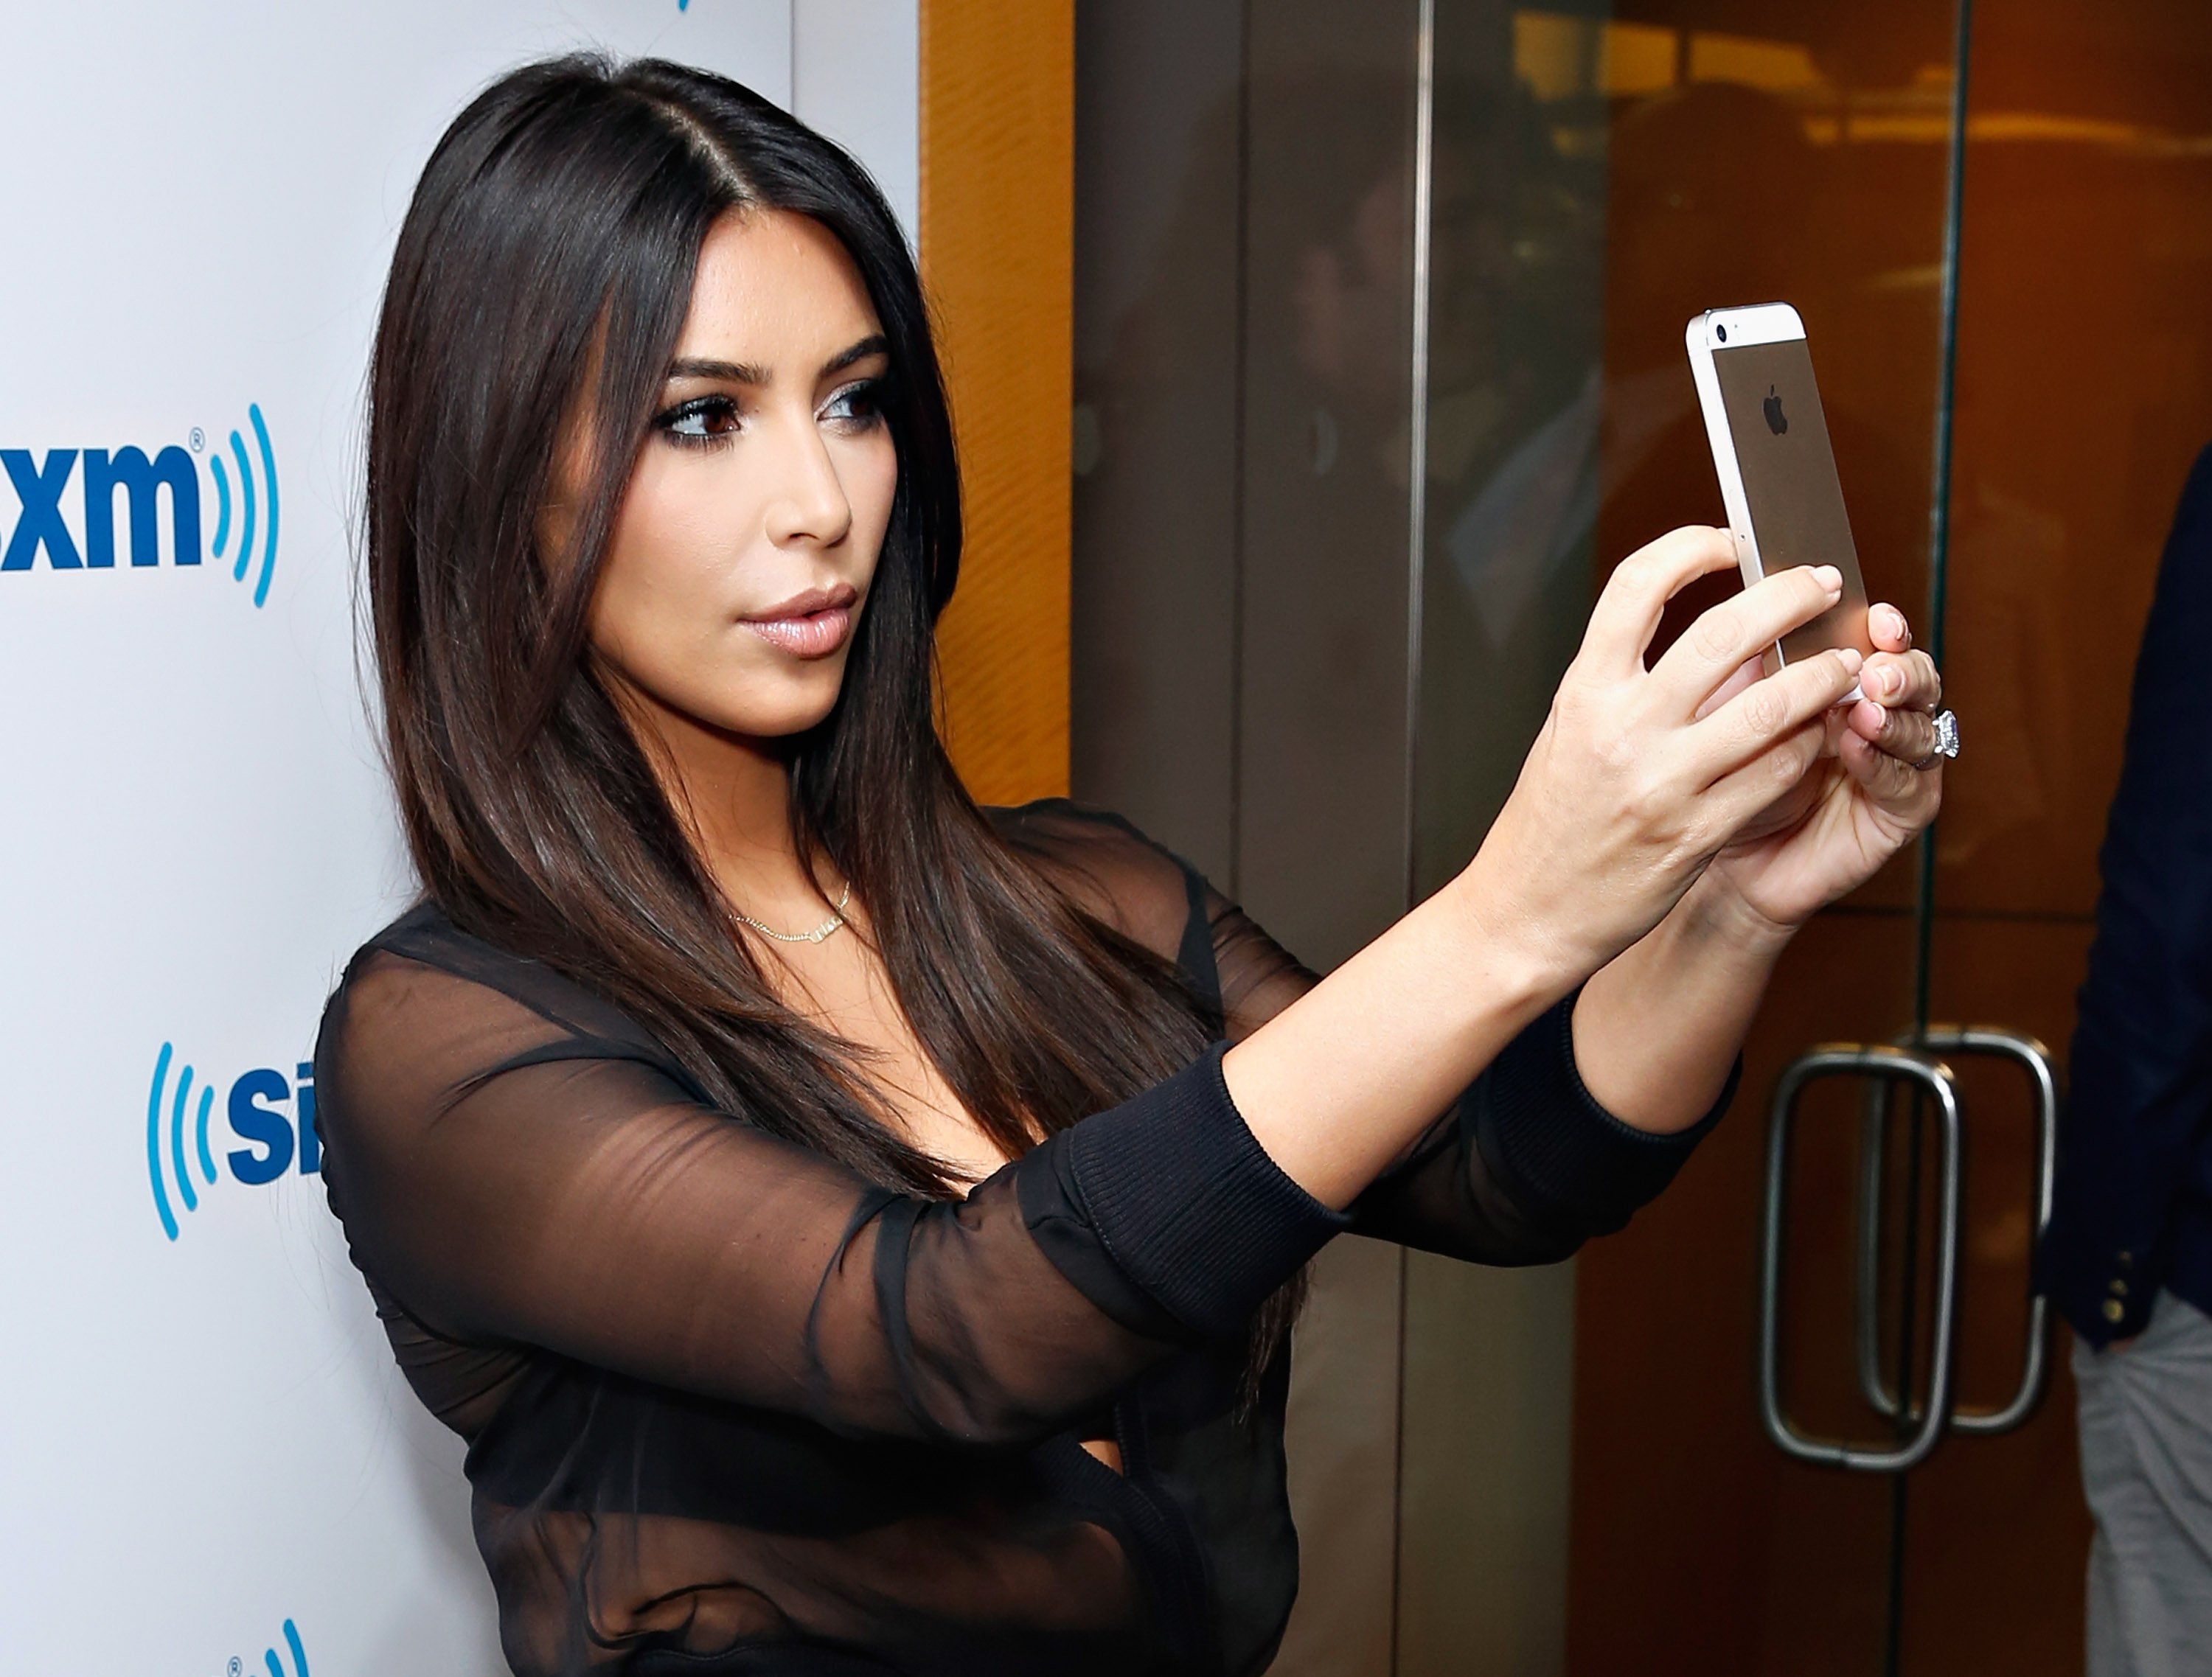 Kim Kardashian visits the SiriusXM Studios in New York City on August 11, 2014 | Photo: Getty Images